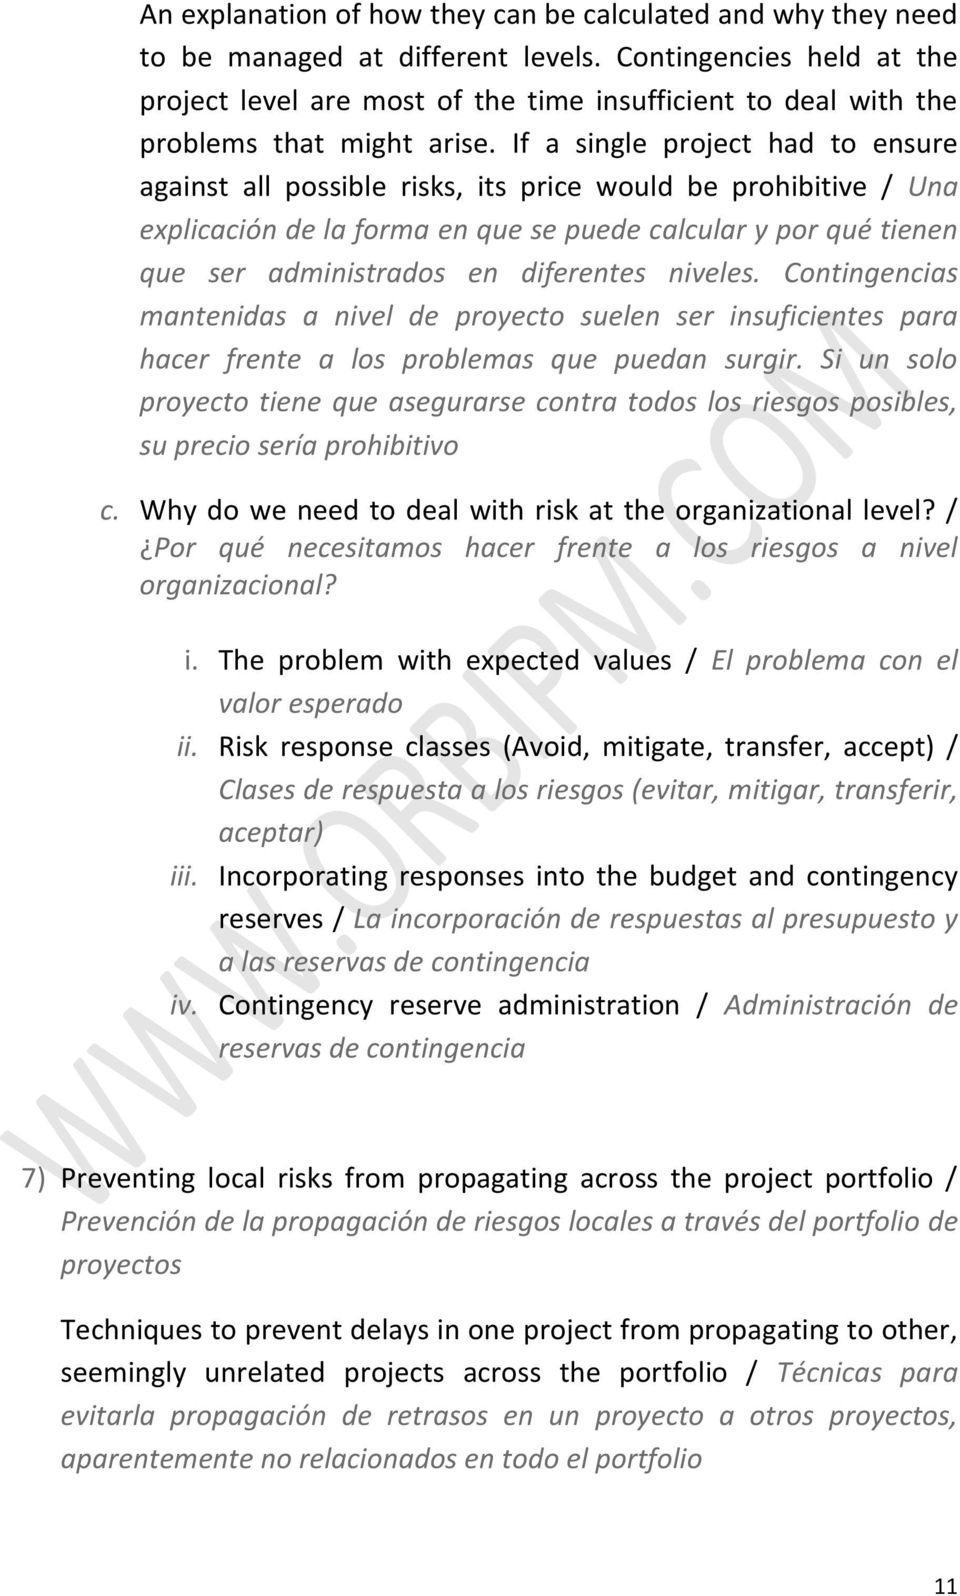 If a single project had to ensure against all possible risks, its price would be prohibitive / Una explicación de la forma en que se puede calcular y por qué tienen que ser administrados en